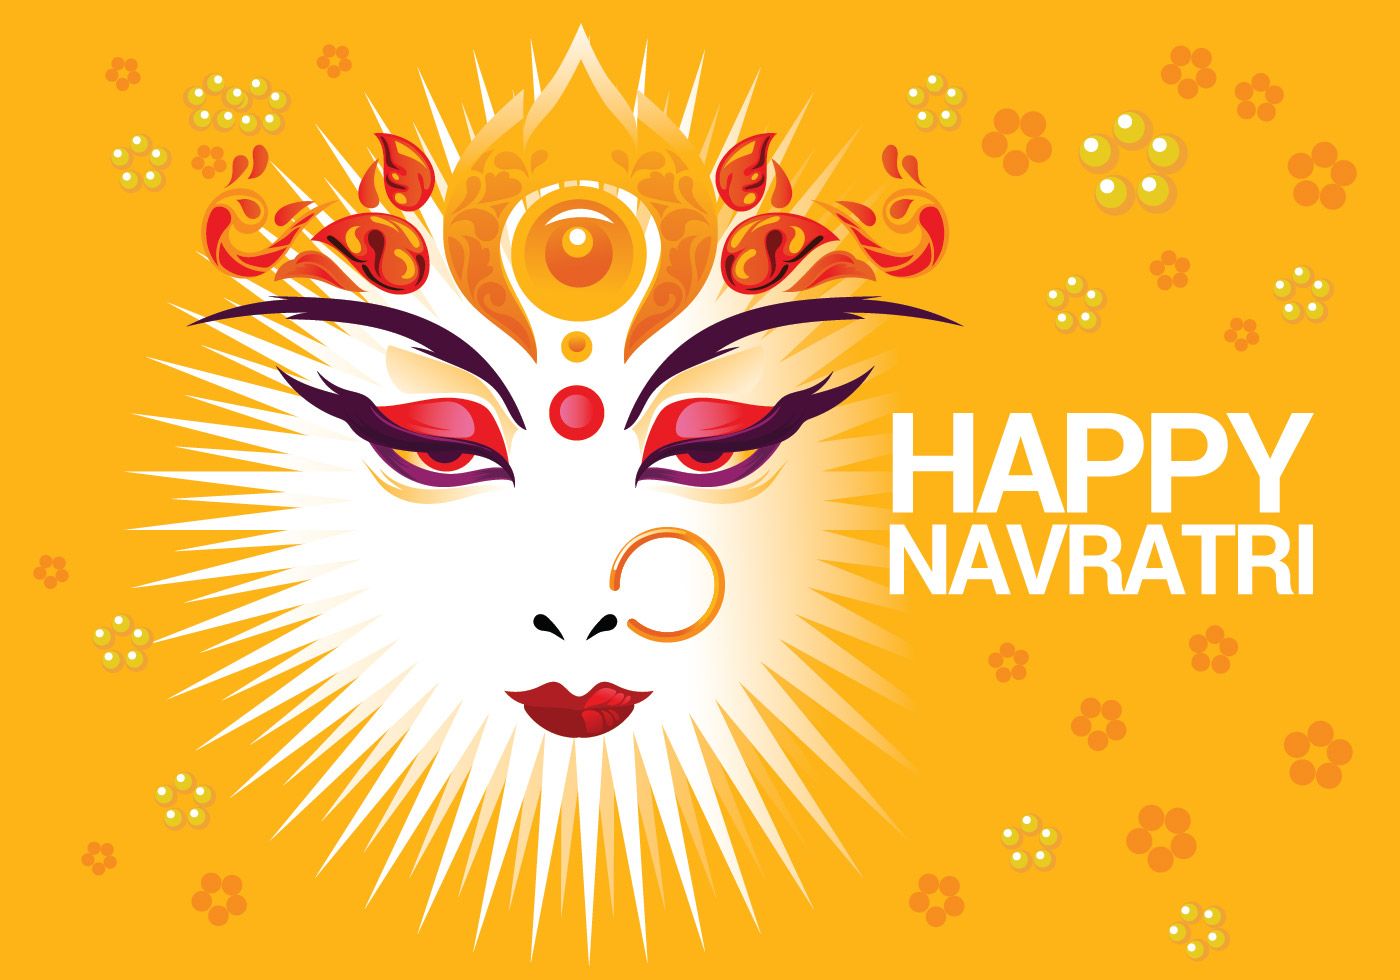 Beautiful greeting card hindu festival shubh navratri download beautiful greeting card hindu festival shubh navratri download free vector art stock graphics images kristyandbryce Image collections